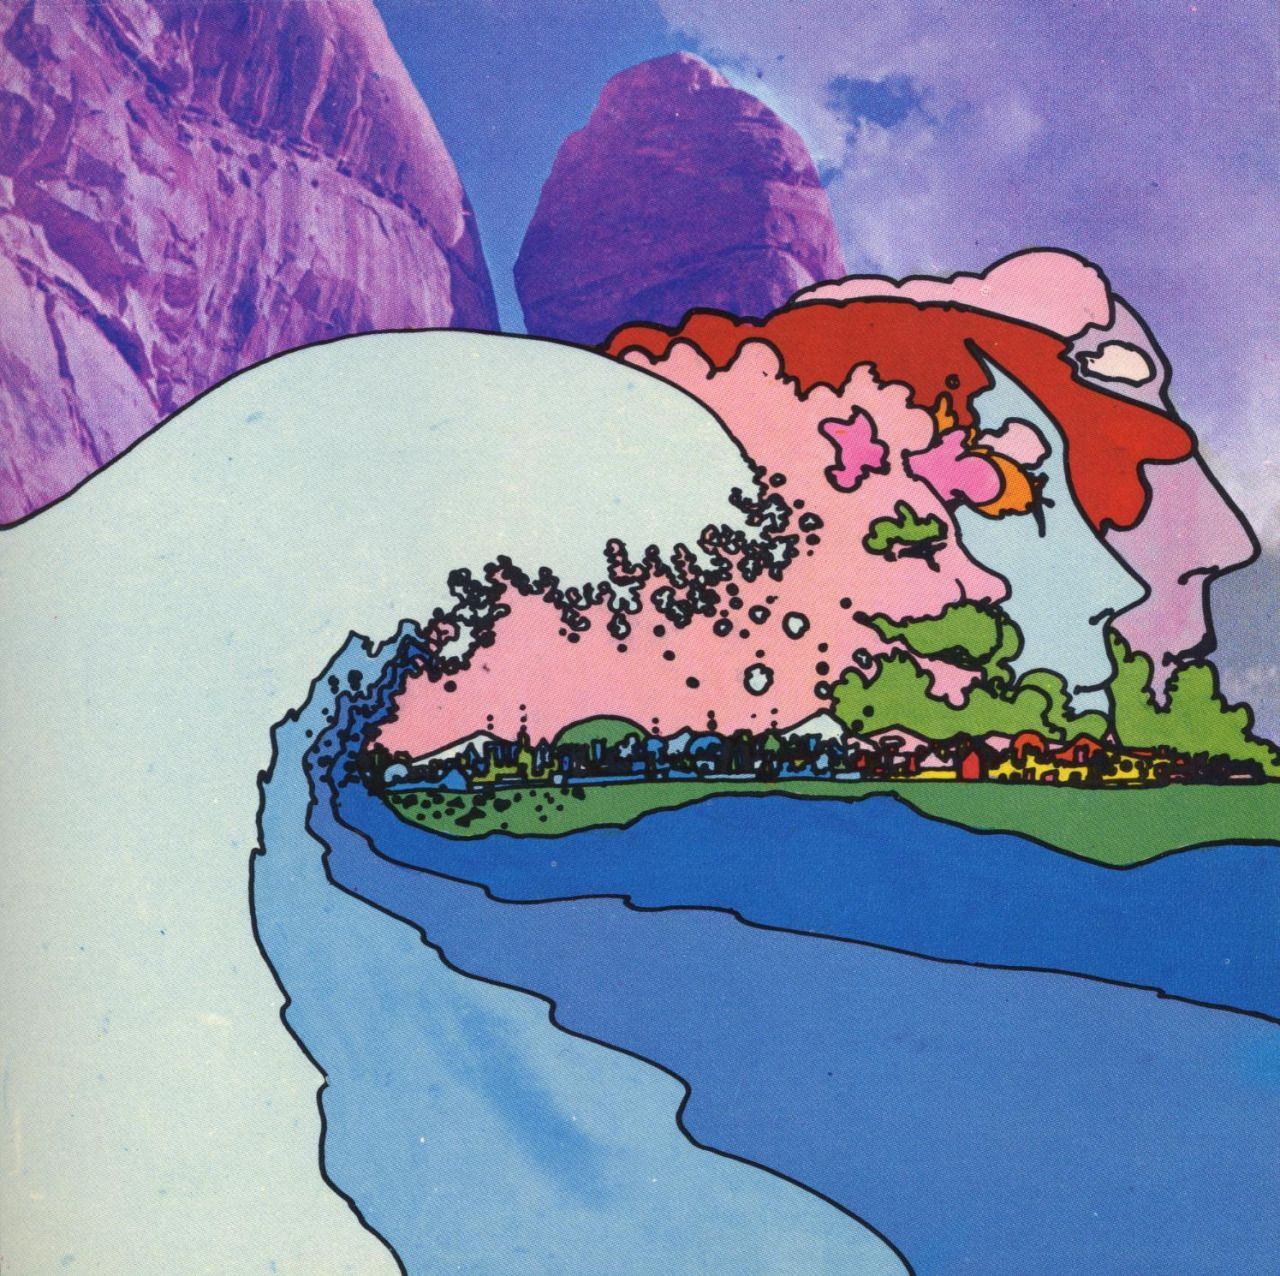 Peter Max: Thought, 1970 | art history in 2019 | Peter max ... Peter Max 60s